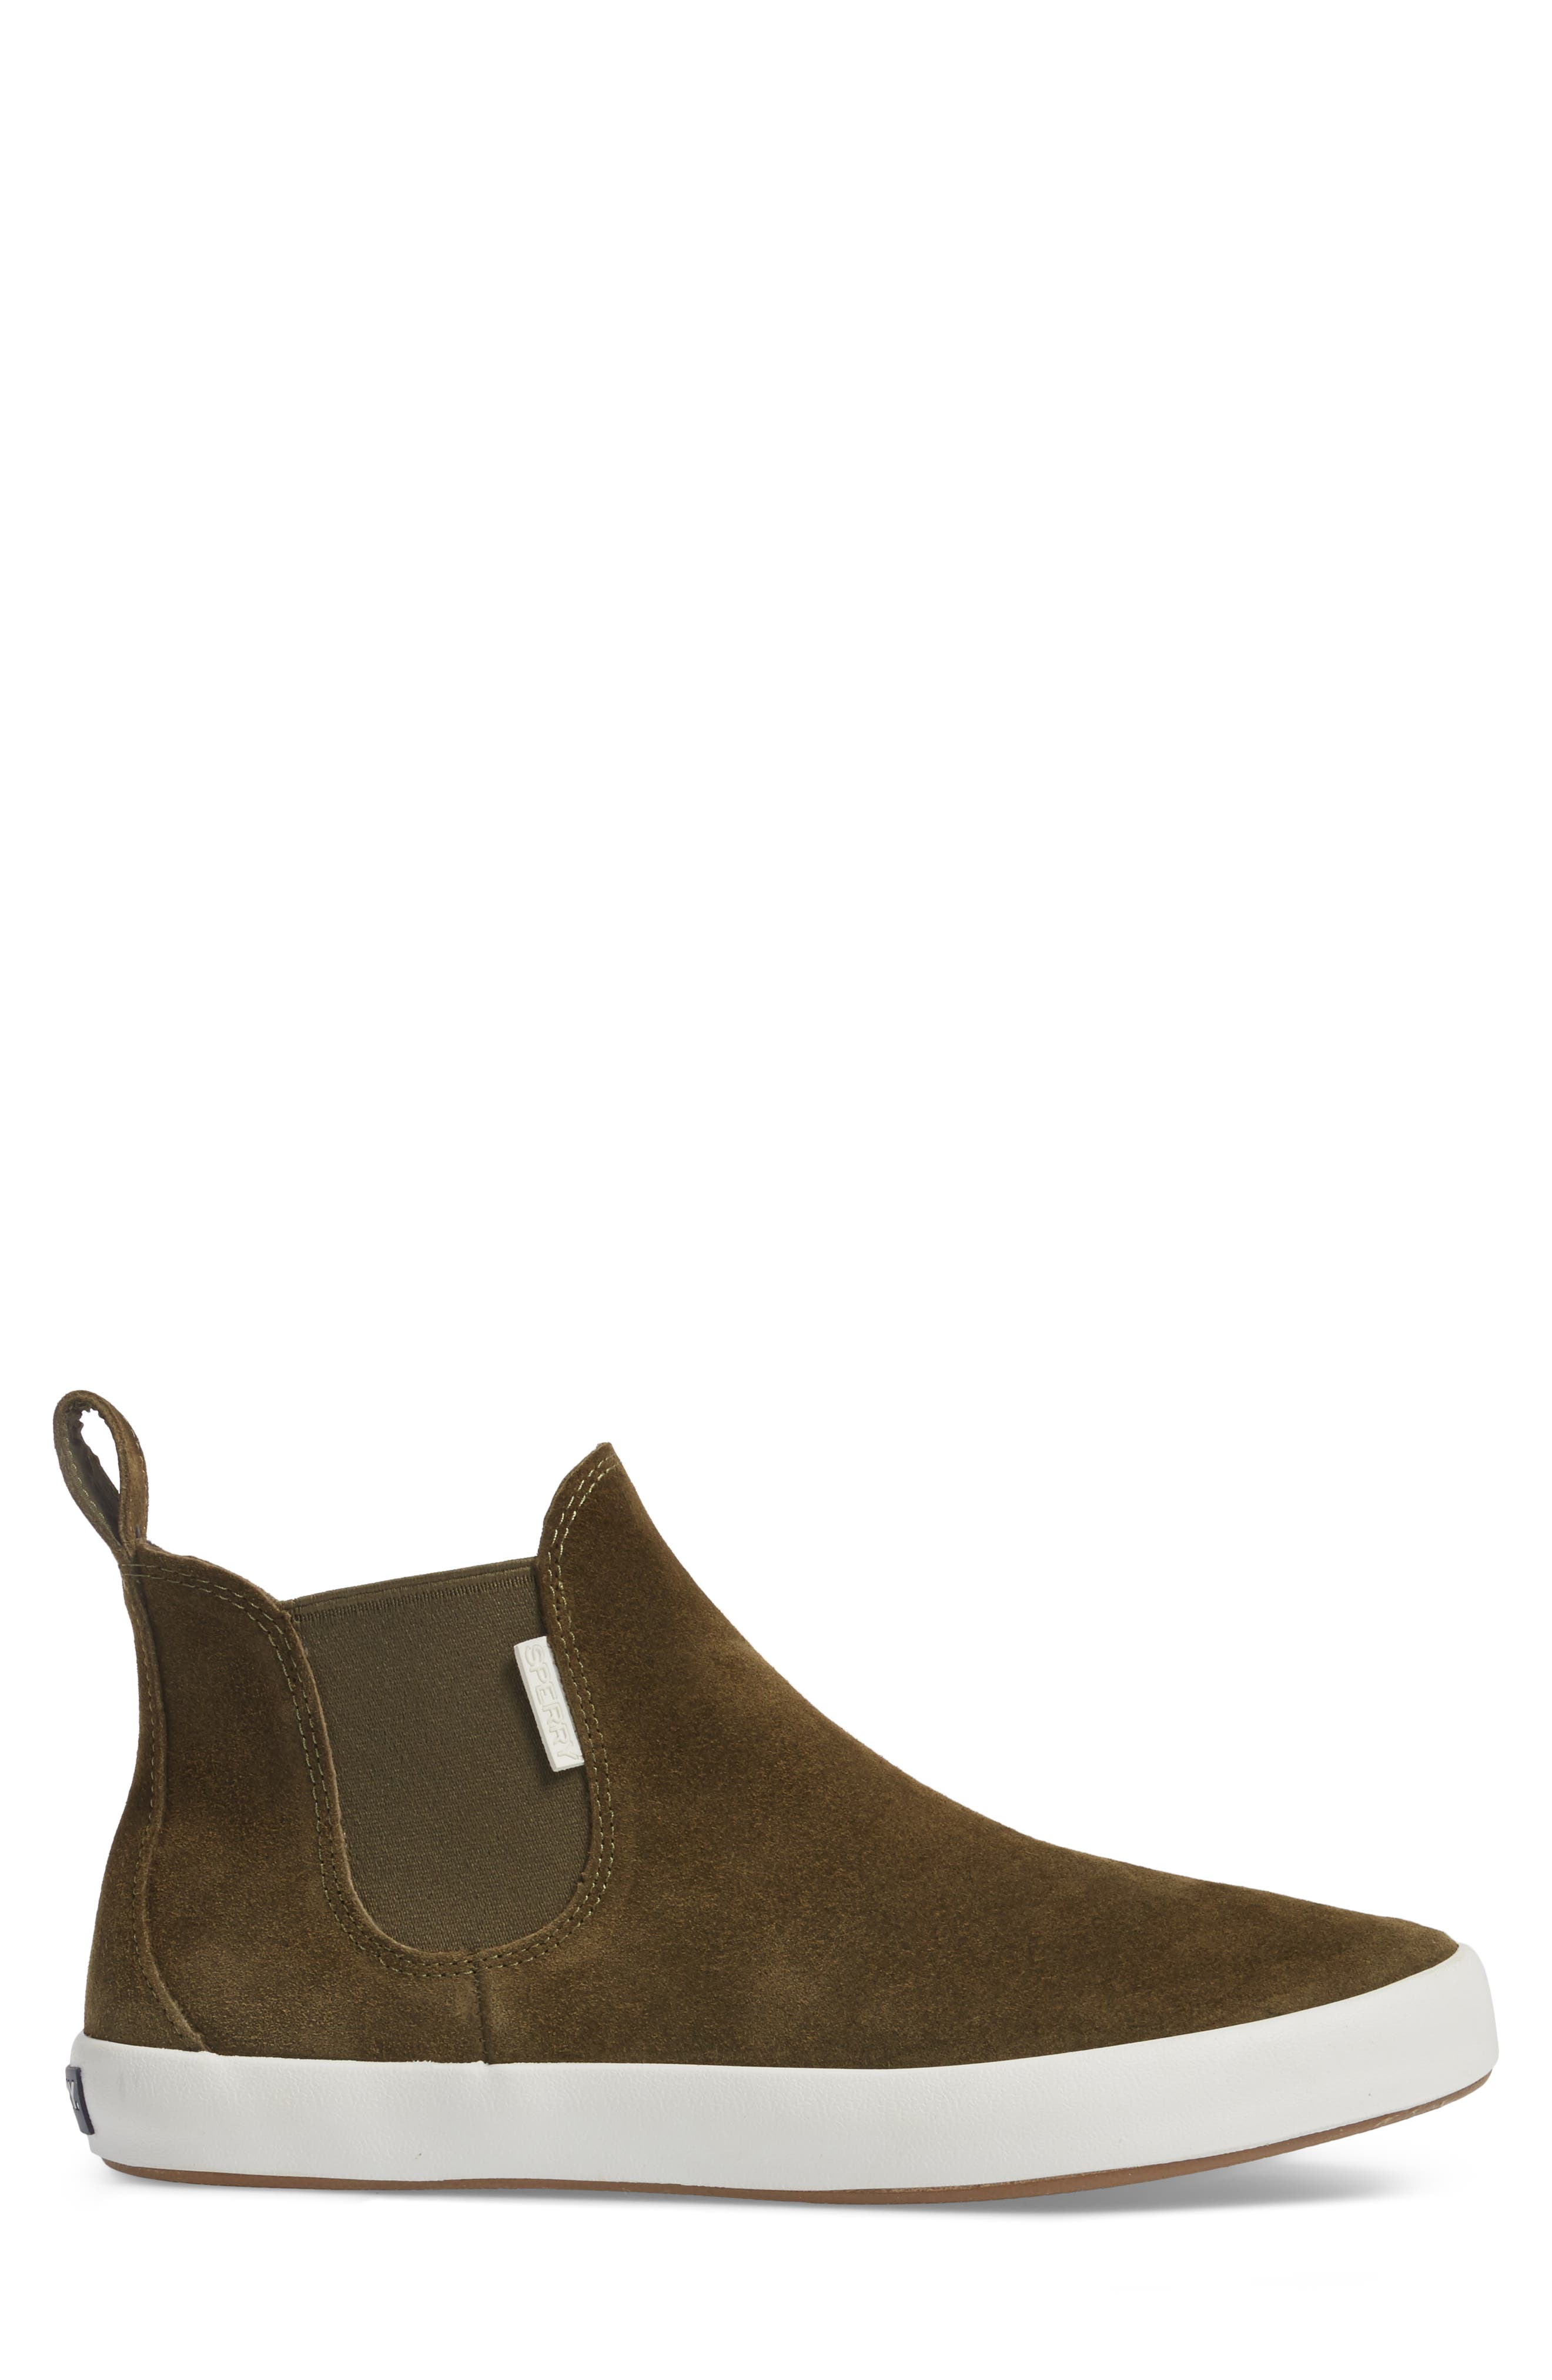 Wahoo Chelsea Sneaker Boot,                             Alternate thumbnail 3, color,                             Olive Leather